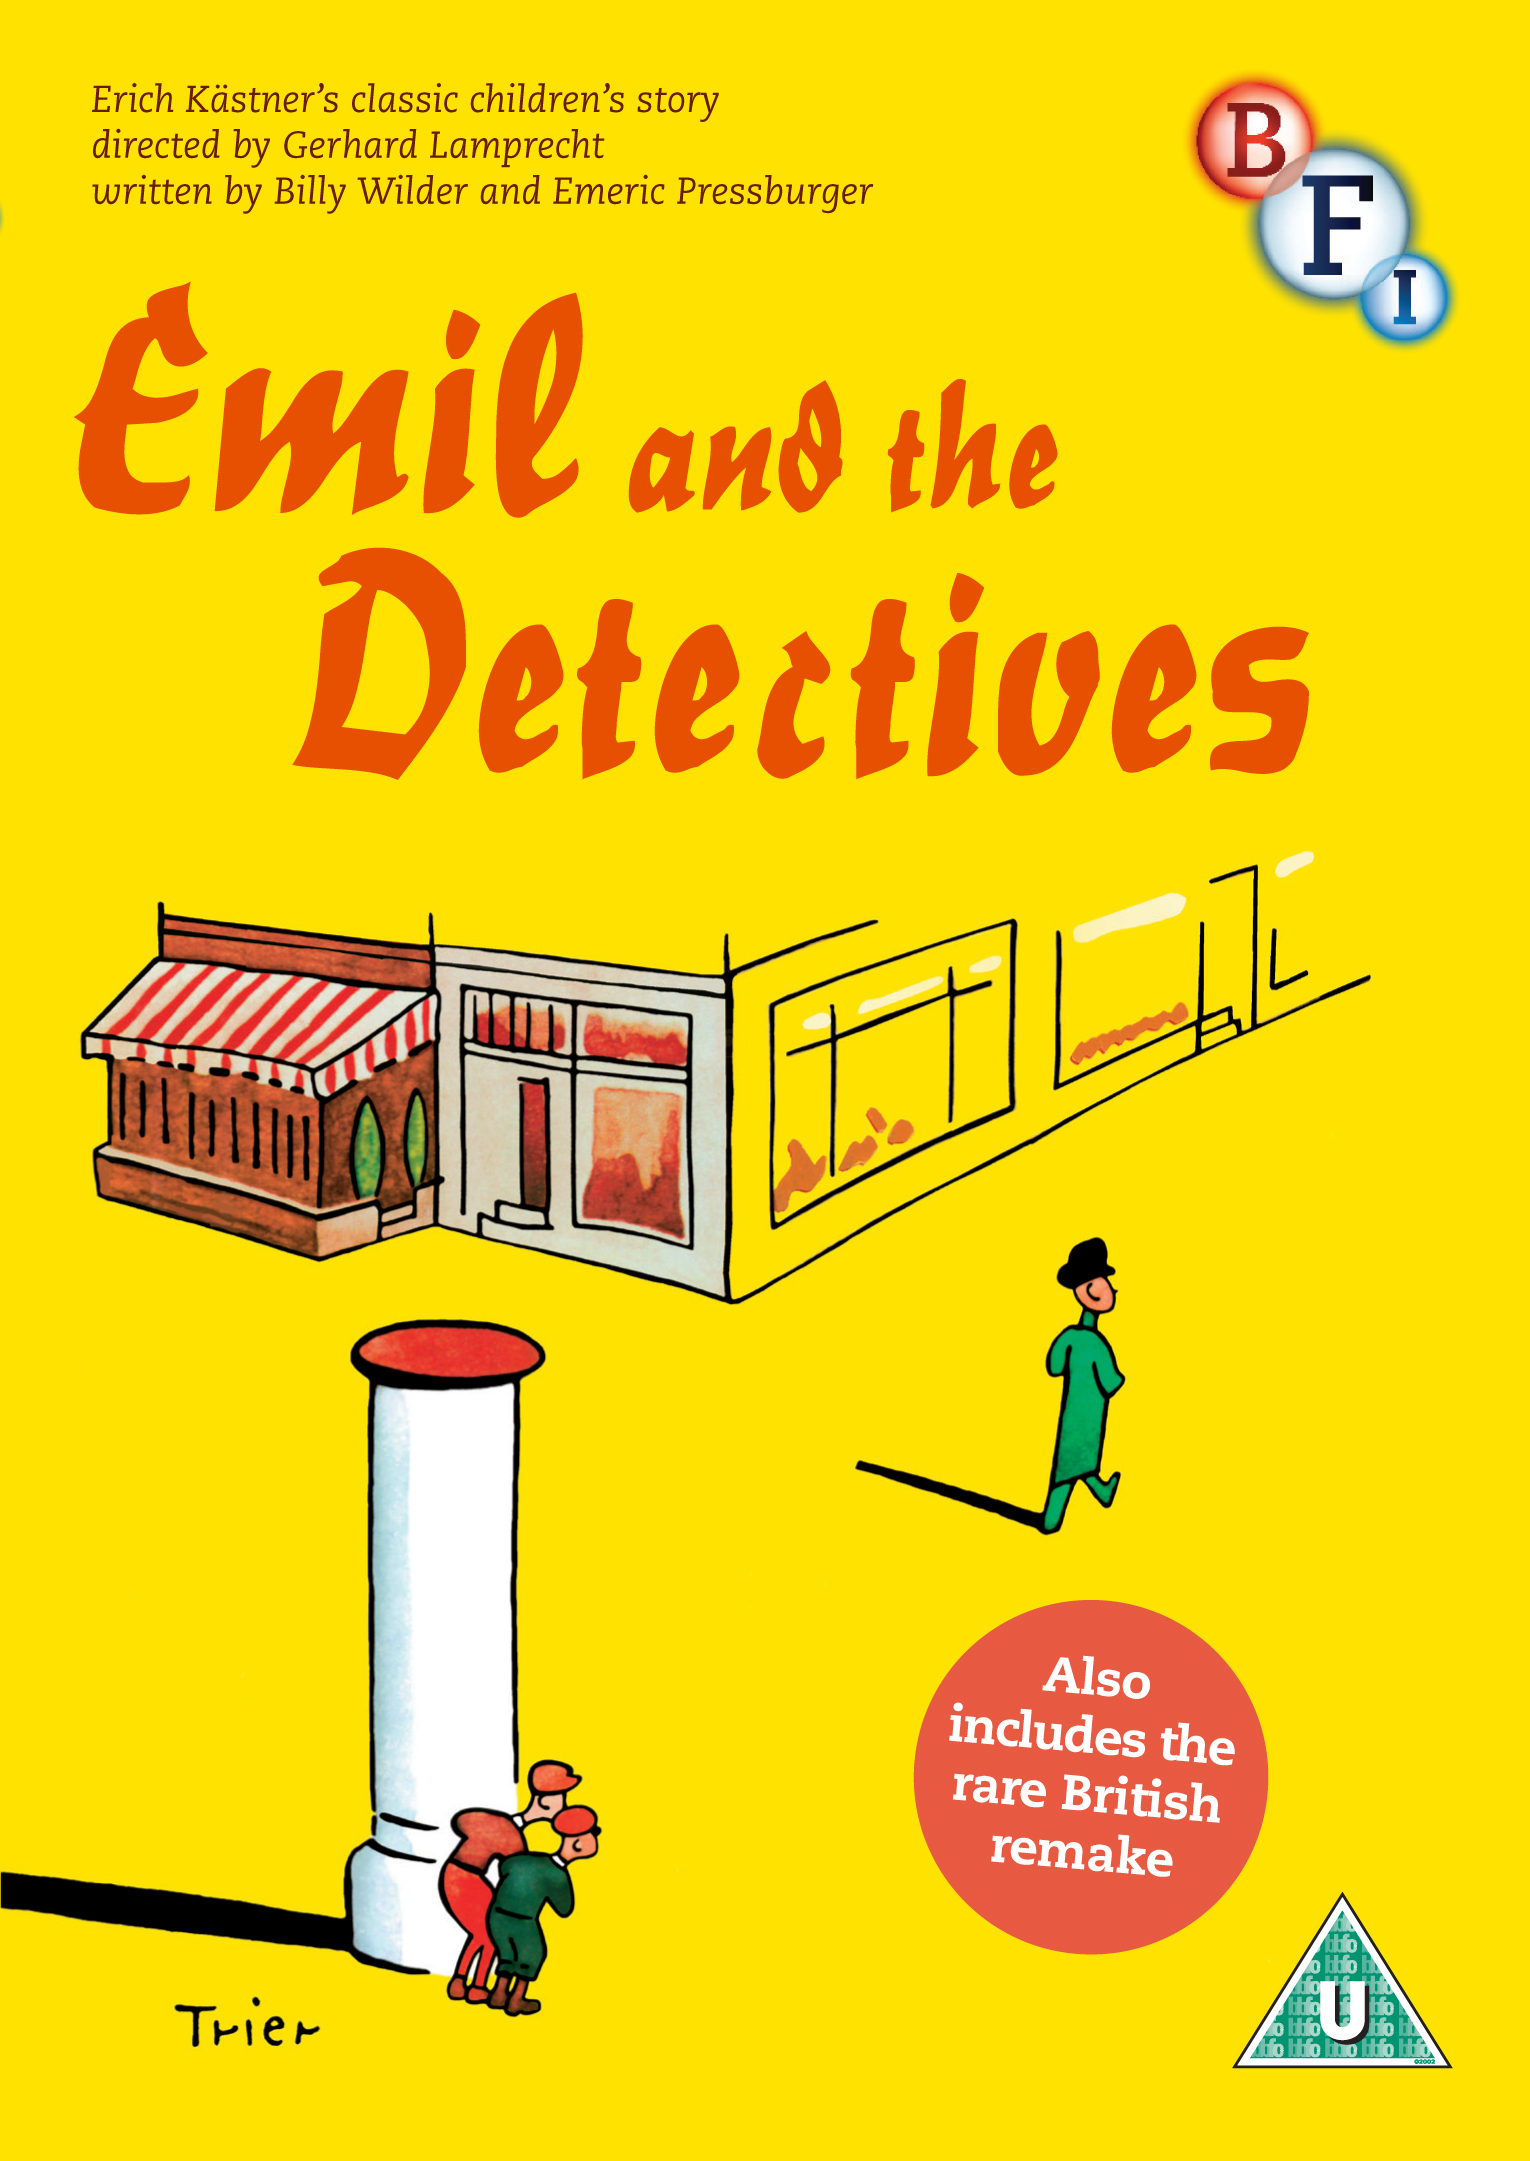 Buy Emil and the Detectives on DVD and Blu Ray